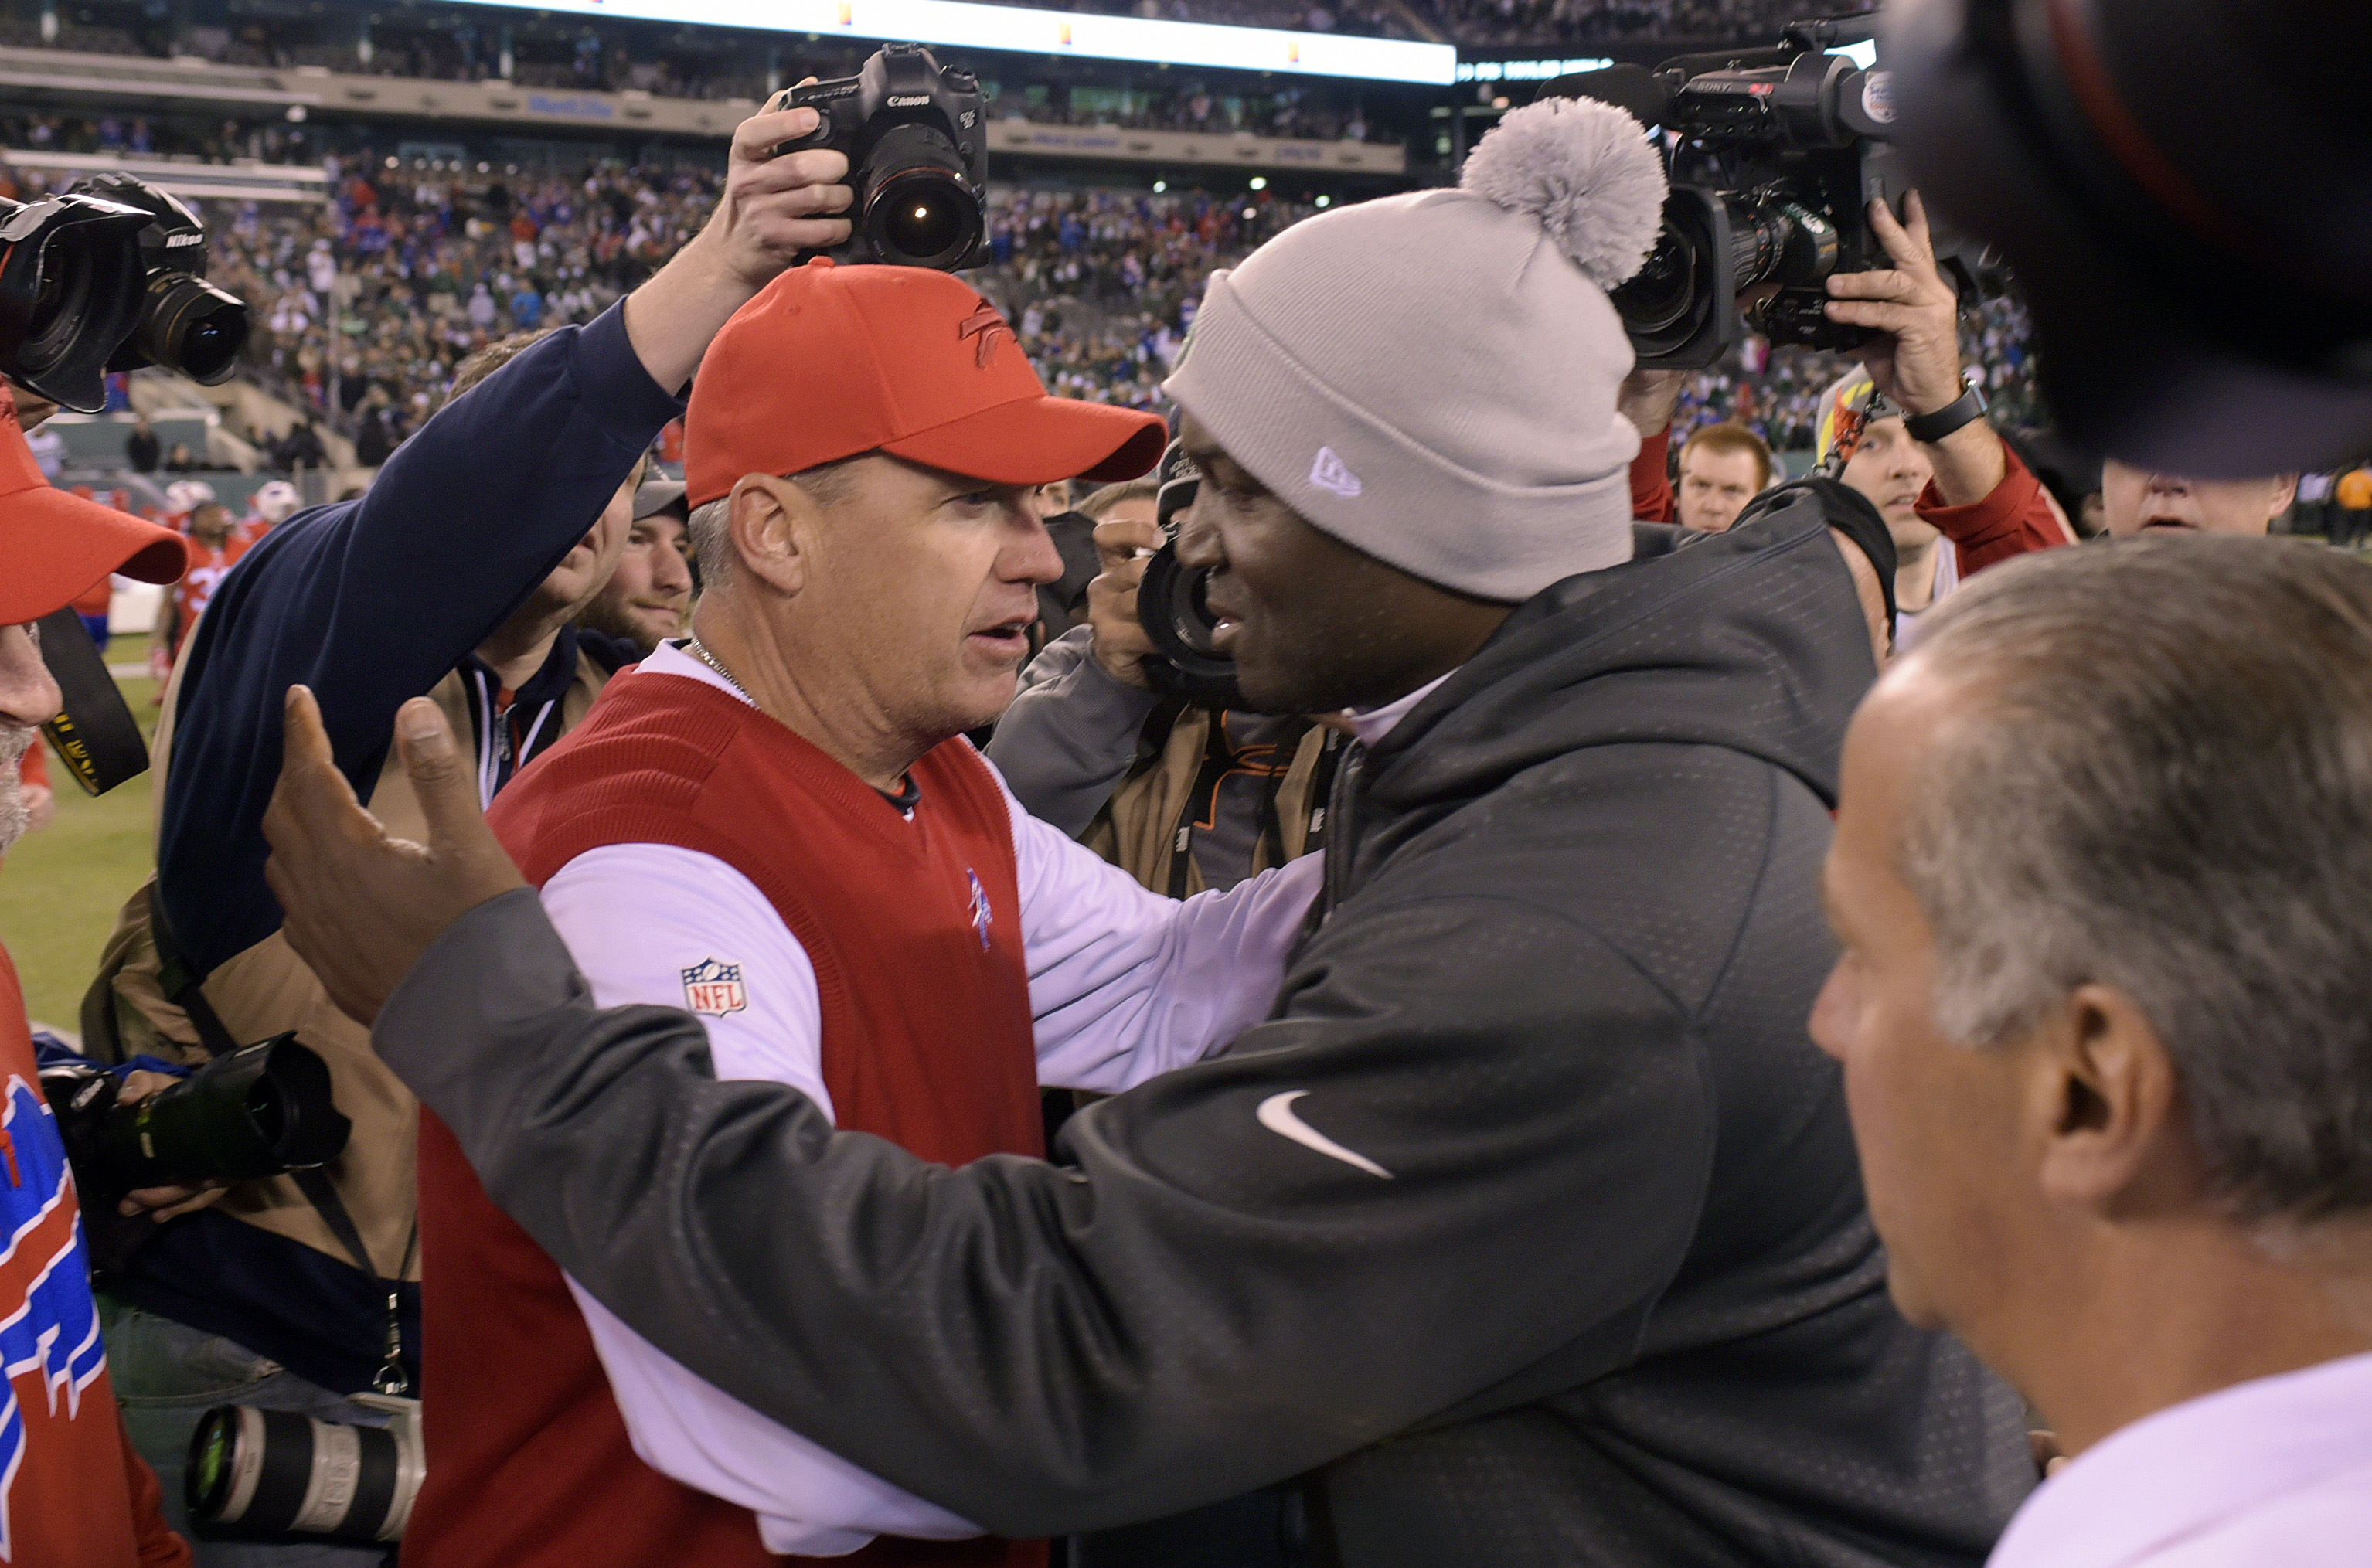 FILE - In this Nov. 12, 2015, file photo, Buffalo Bills head coach Rex Ryan, left, and New York Jets head coach Todd Bowles talk after the Bills won 22-17 in an NFL football game in East Rutherford, N.J. The two teams meet on Sunday, with a playoff spot o